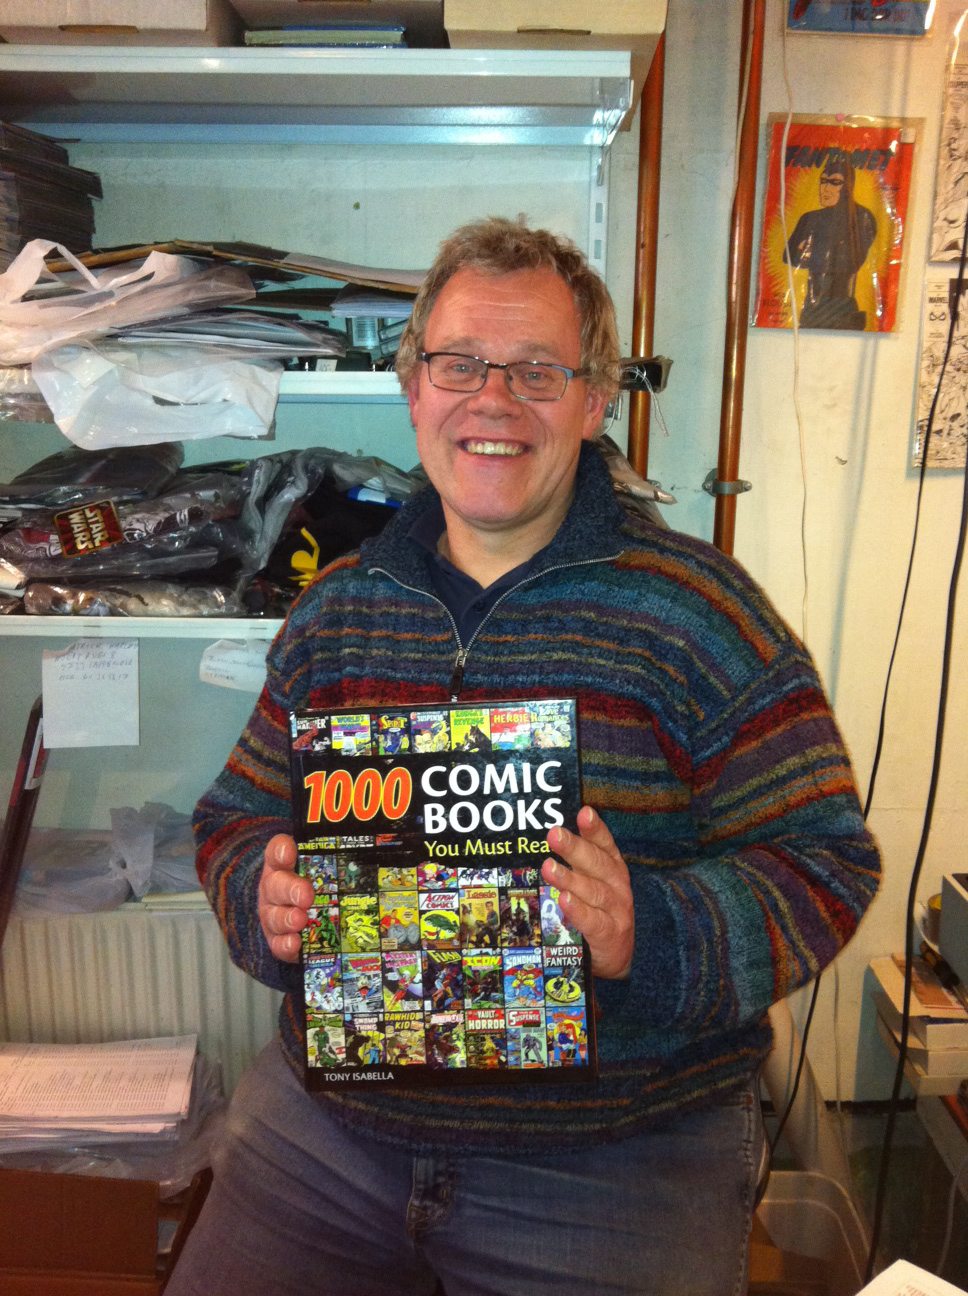 This one is for you, Tony!  Your book is for sale in Denmark! (As held by   Komics   owner, Kjeld)